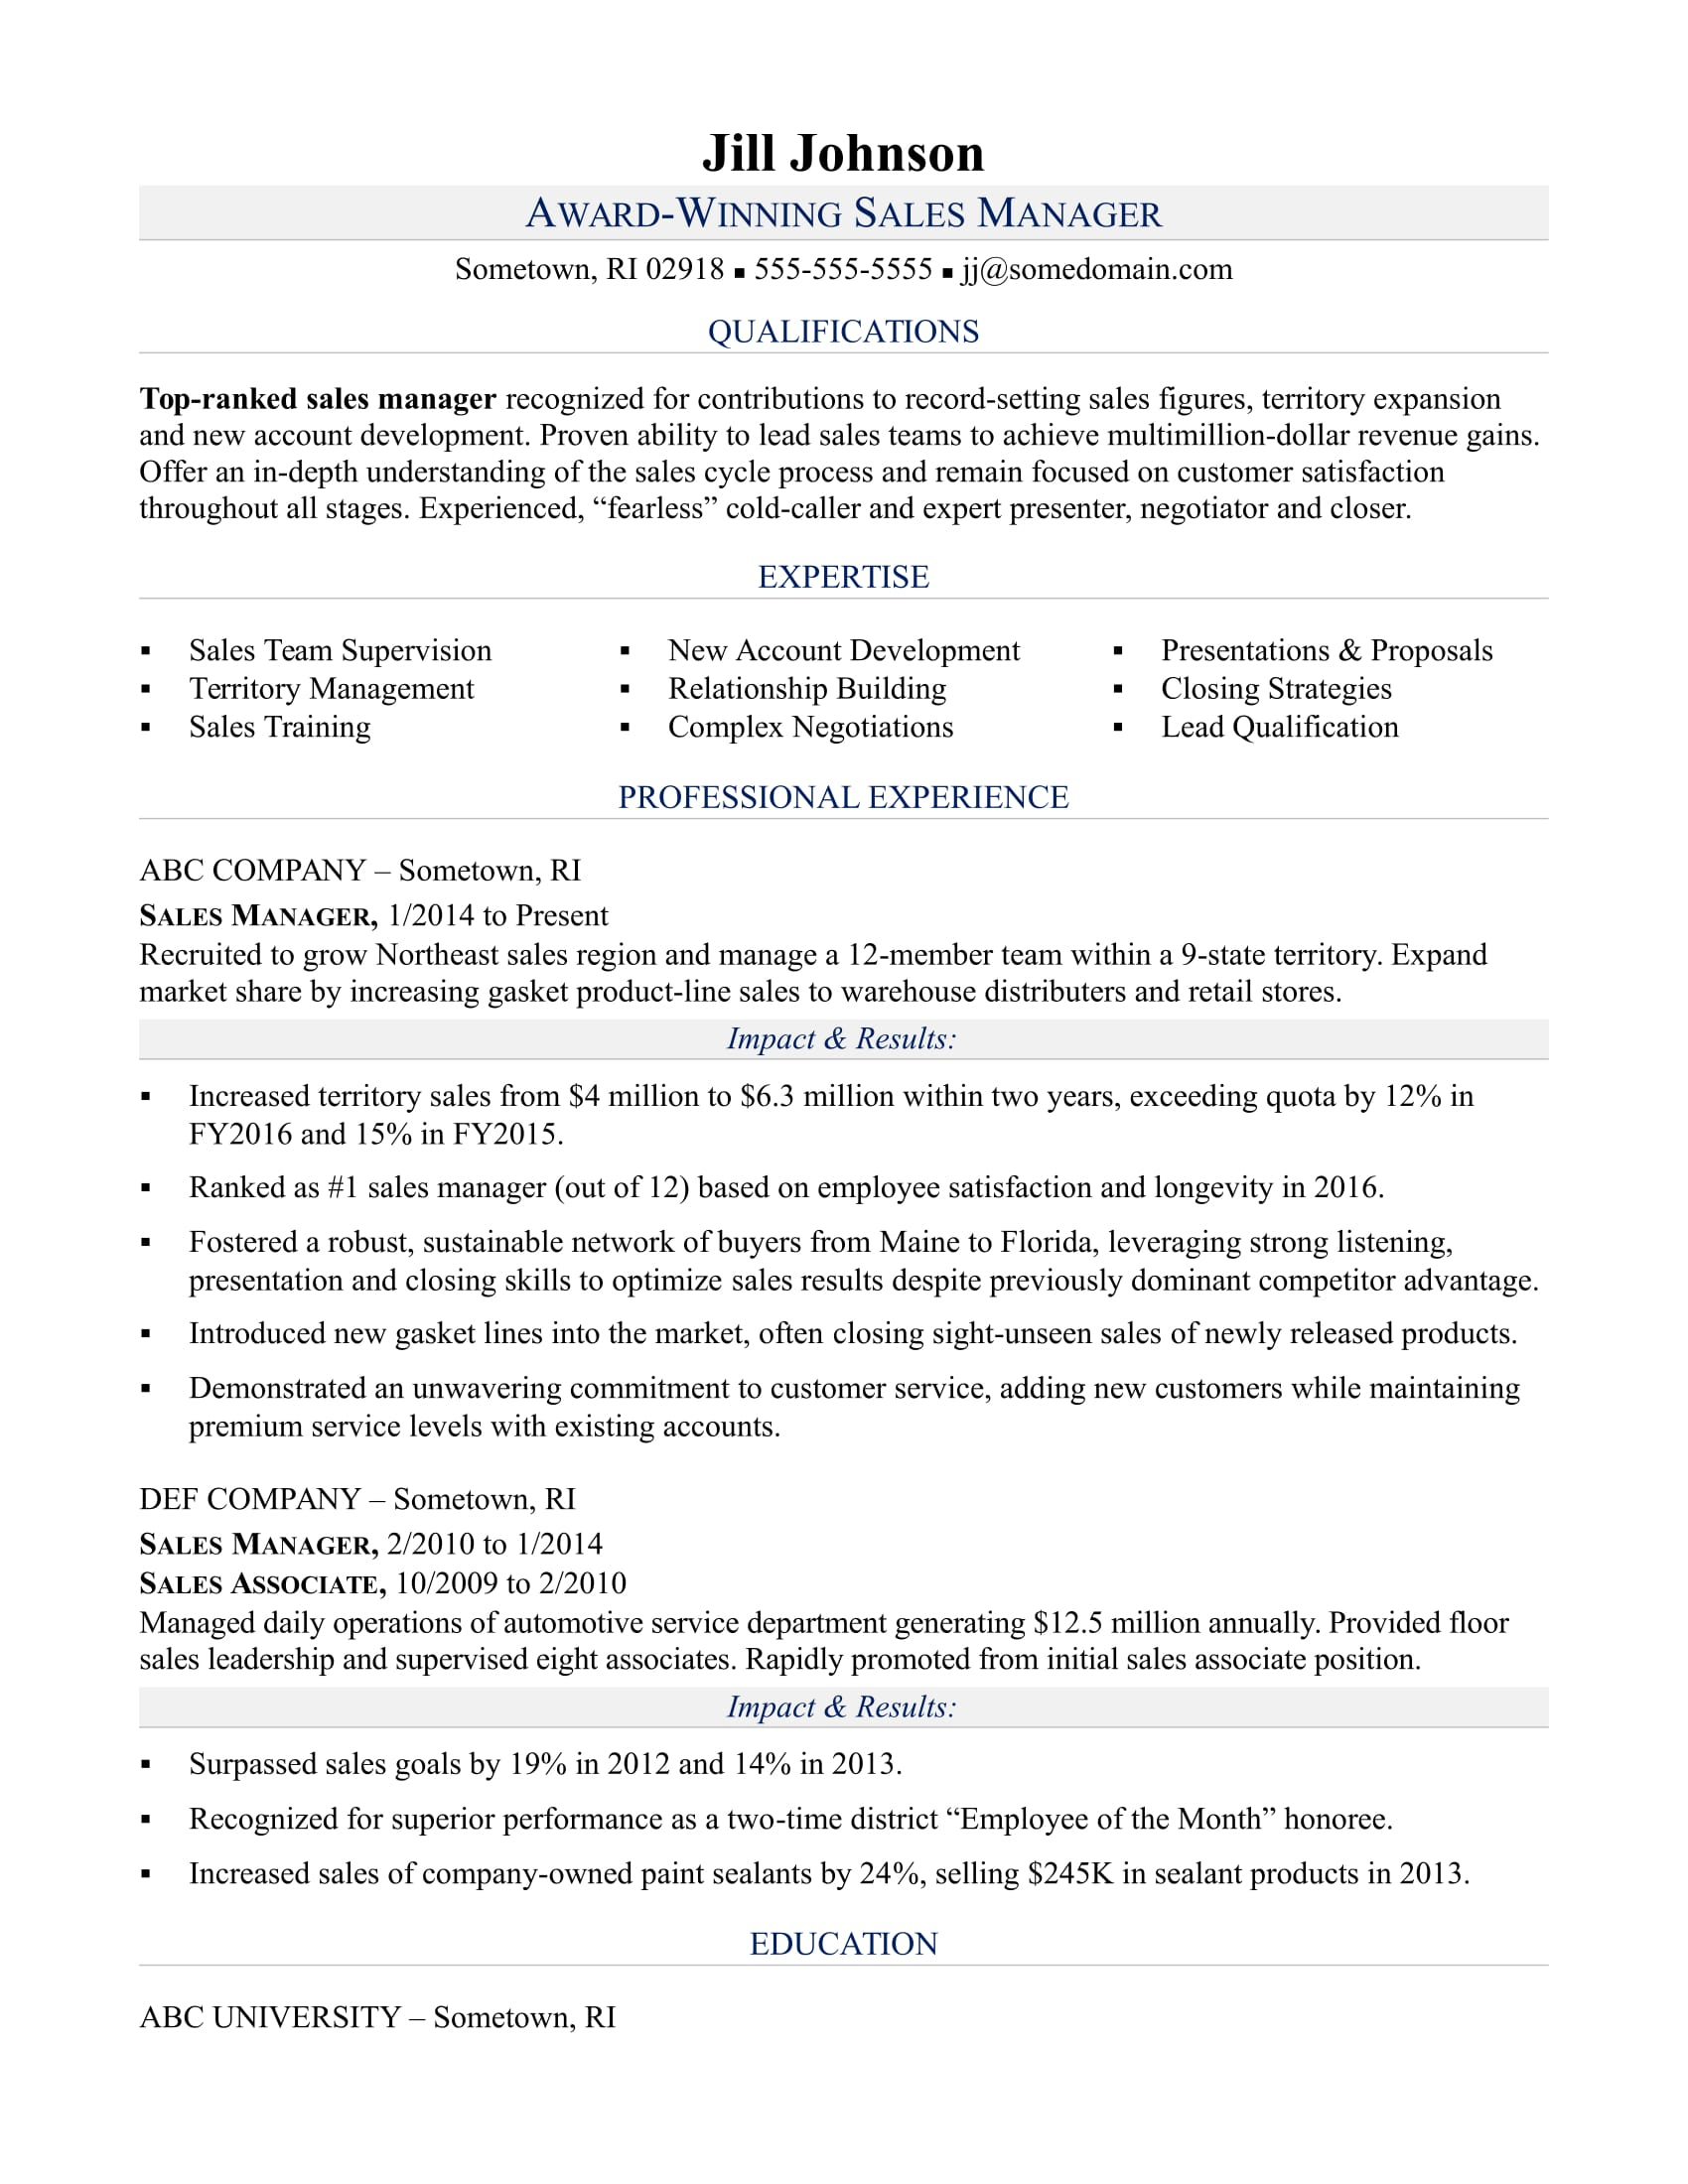 Sales Manager Resume Sample  Monster.com